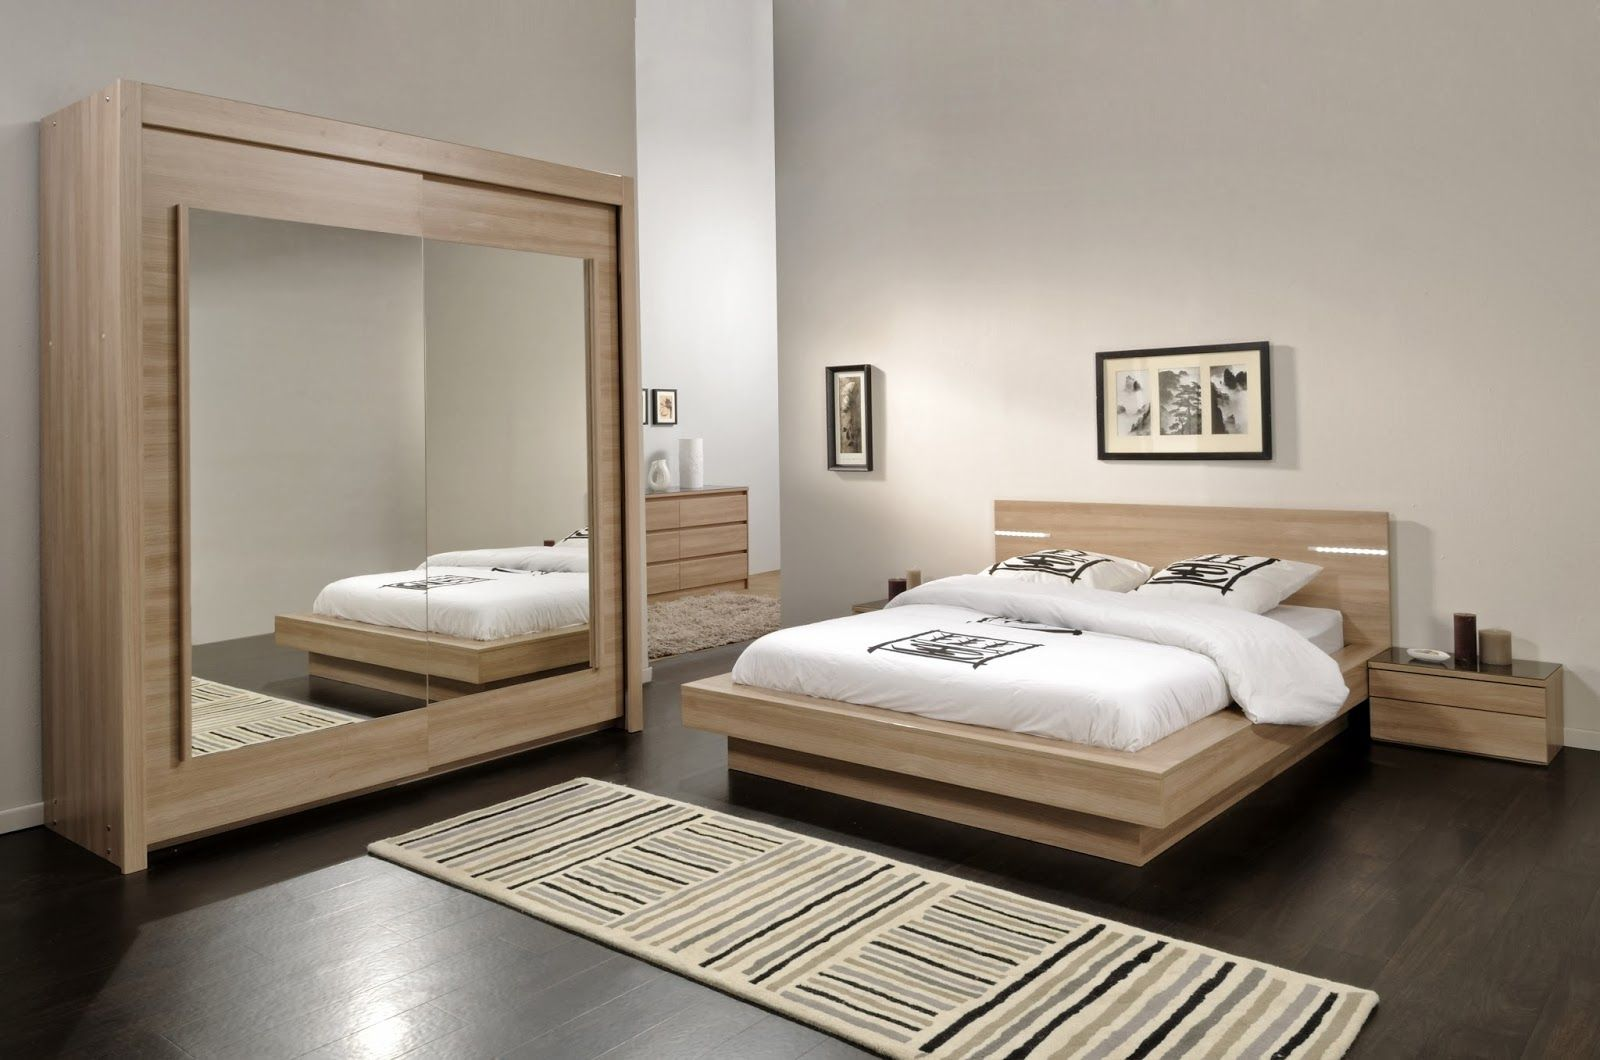 Couples Bedroom Designs Fascinating Modern Bedroom Ideas For Couples  Design Ideas 20172018 Inspiration